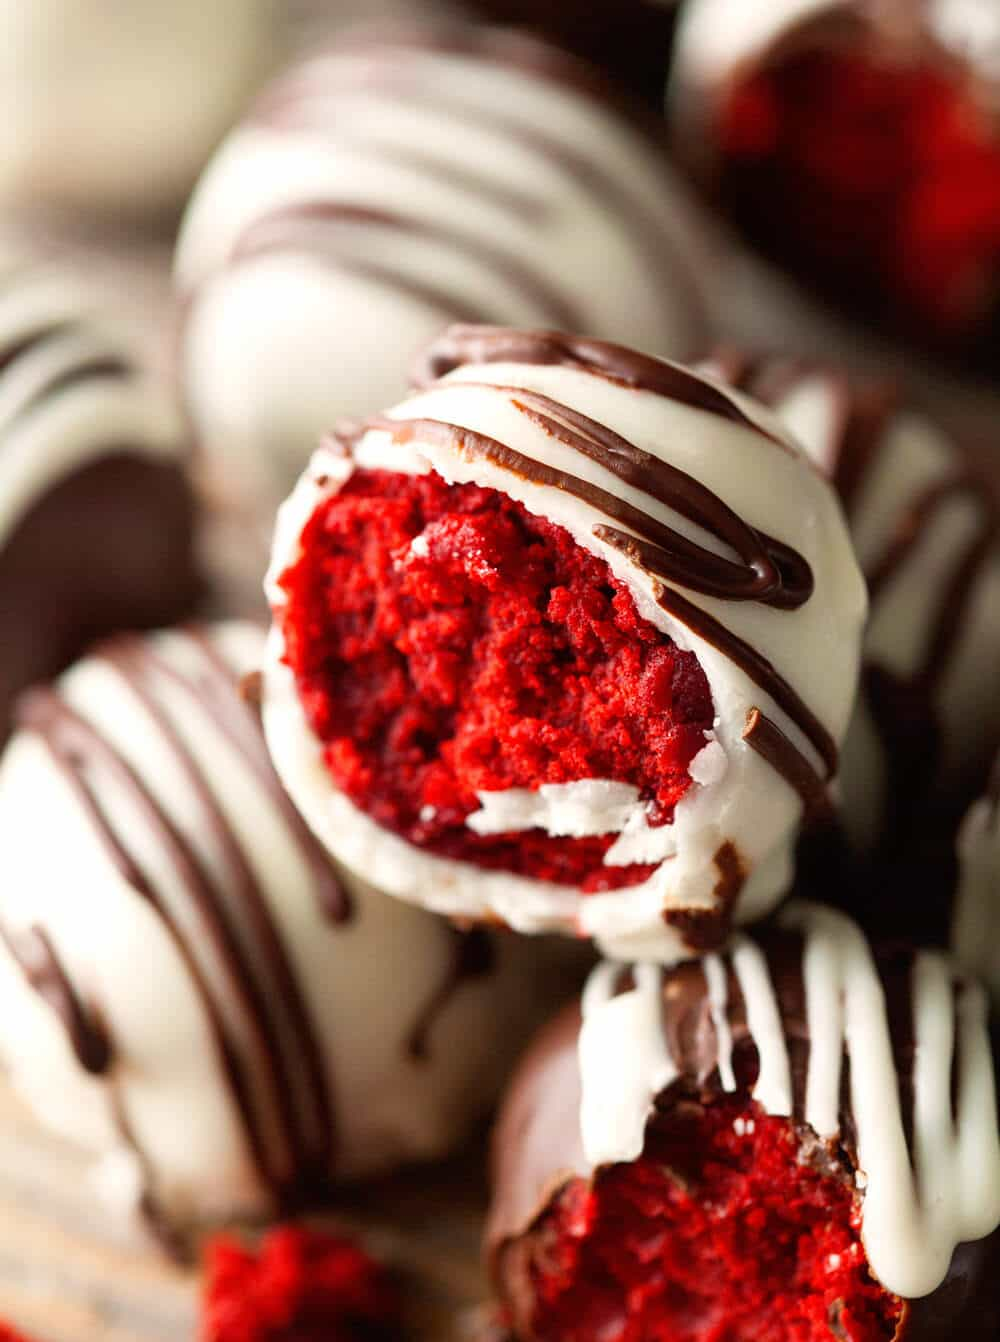 Red Velvet Cake Triffles - Quick and Easy! Treat yourself to these delicious Chocolate Bites filled with Red Velvet Cake!